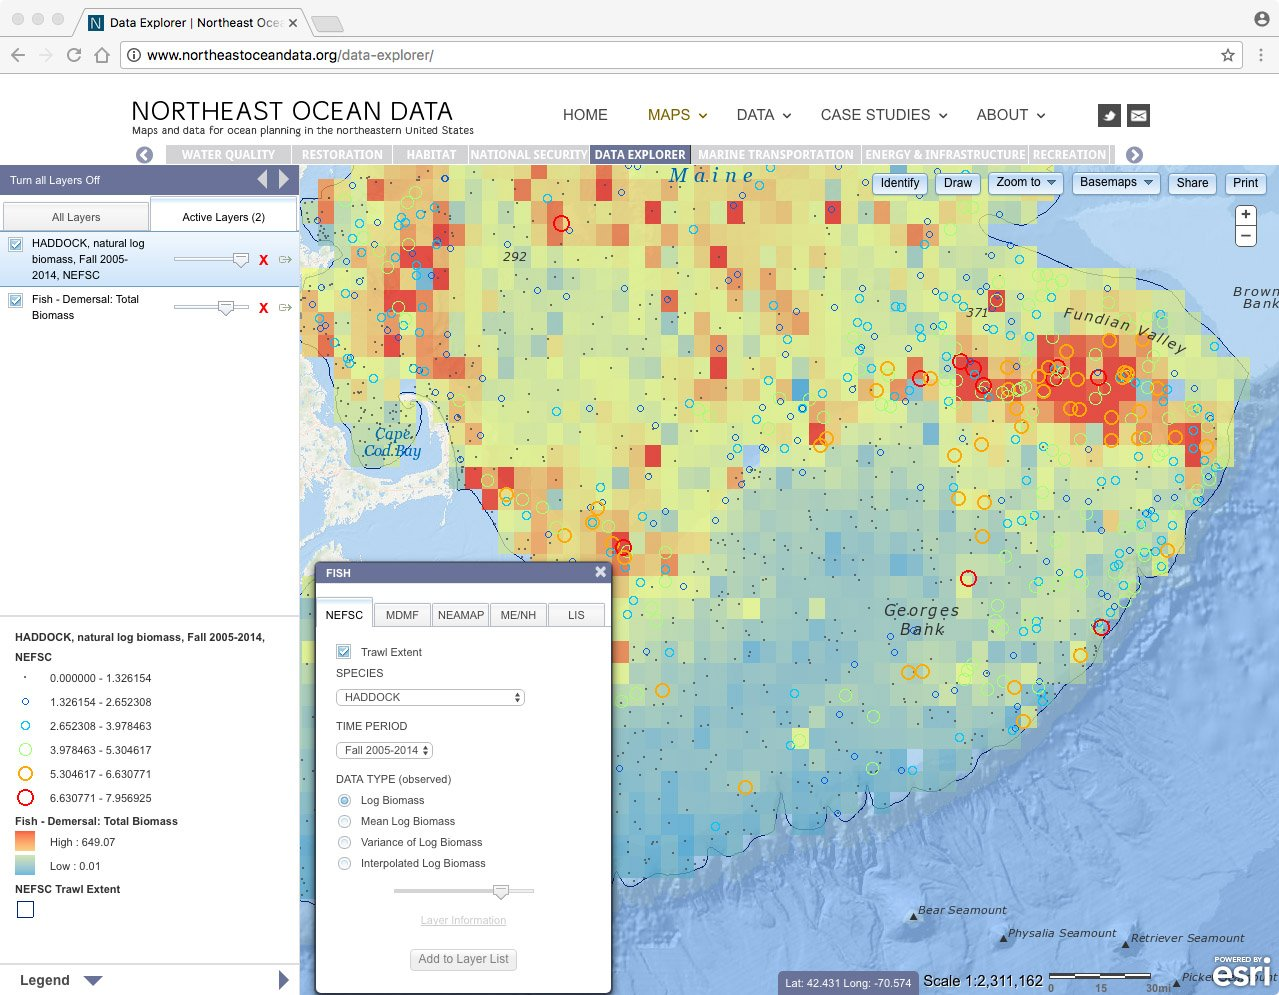 Screenshot of haddock biomass (colored circles) and total demersal fish biomass (colored squares) on Georges Bank